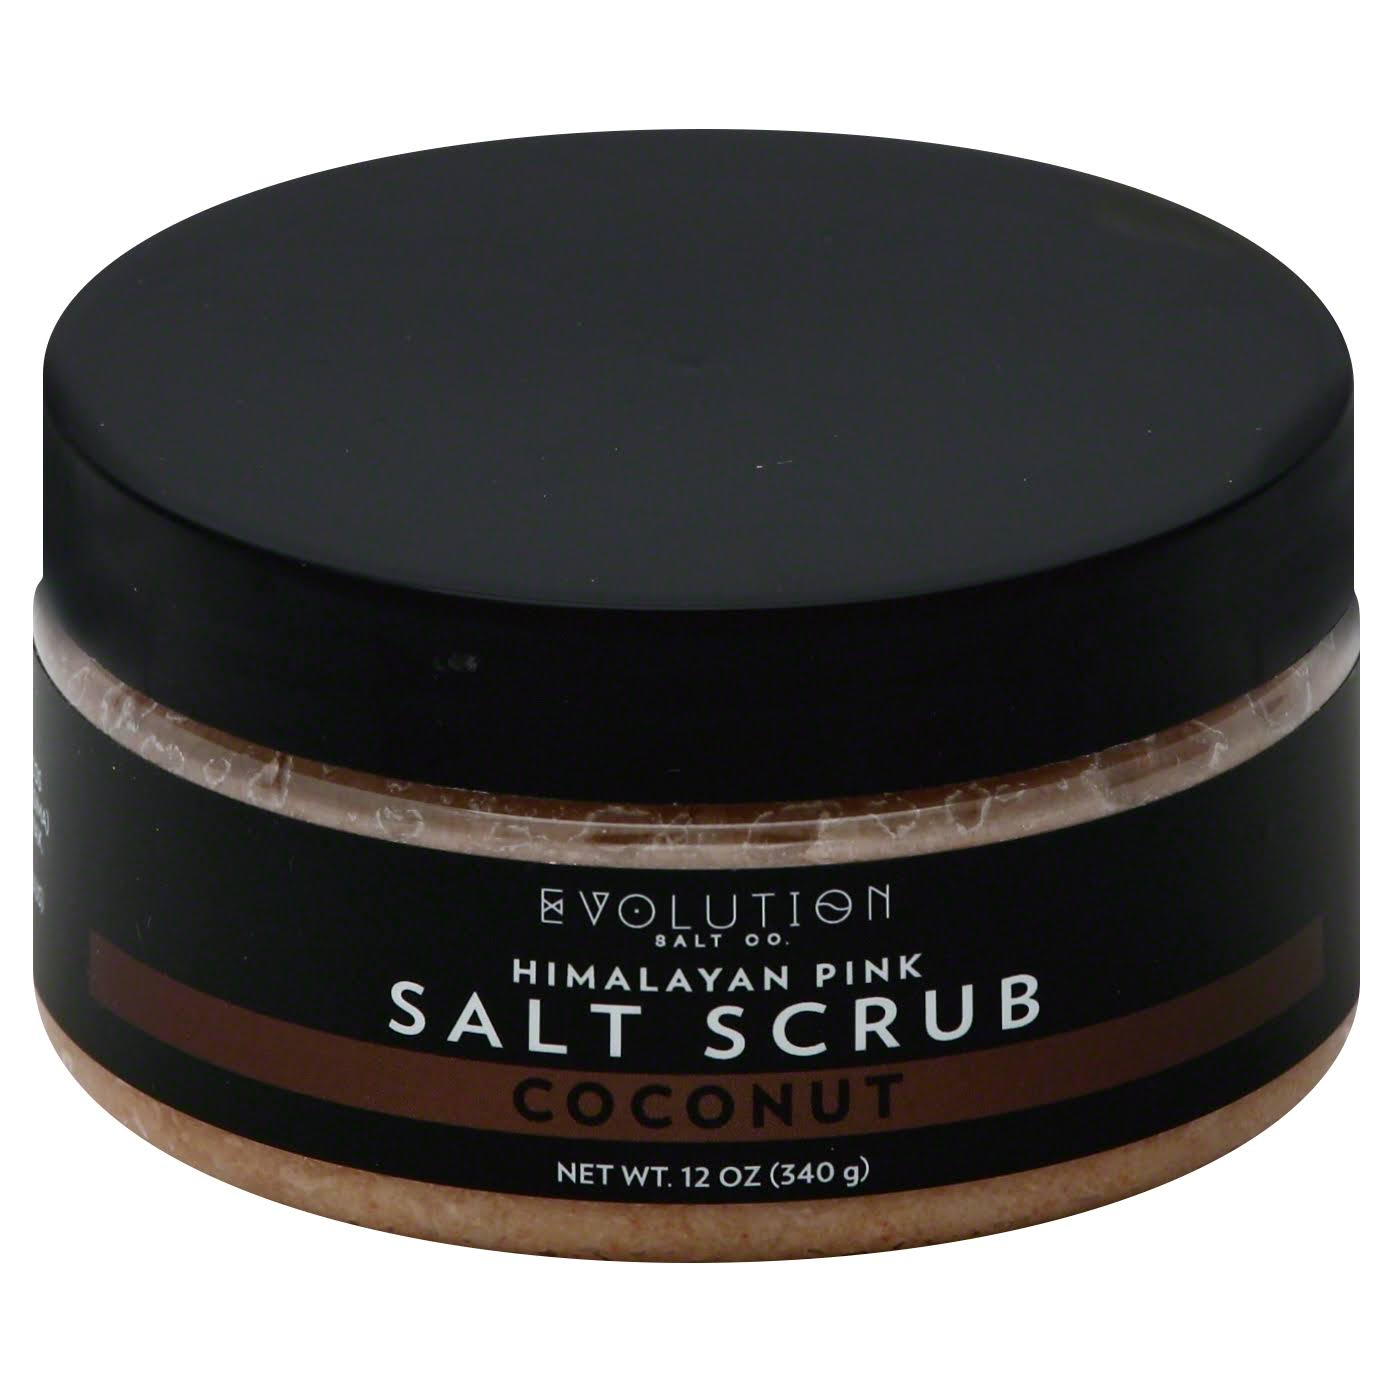 Evolution Salt Salt Scrub, Himalayan Pink, Coconut - 12 oz